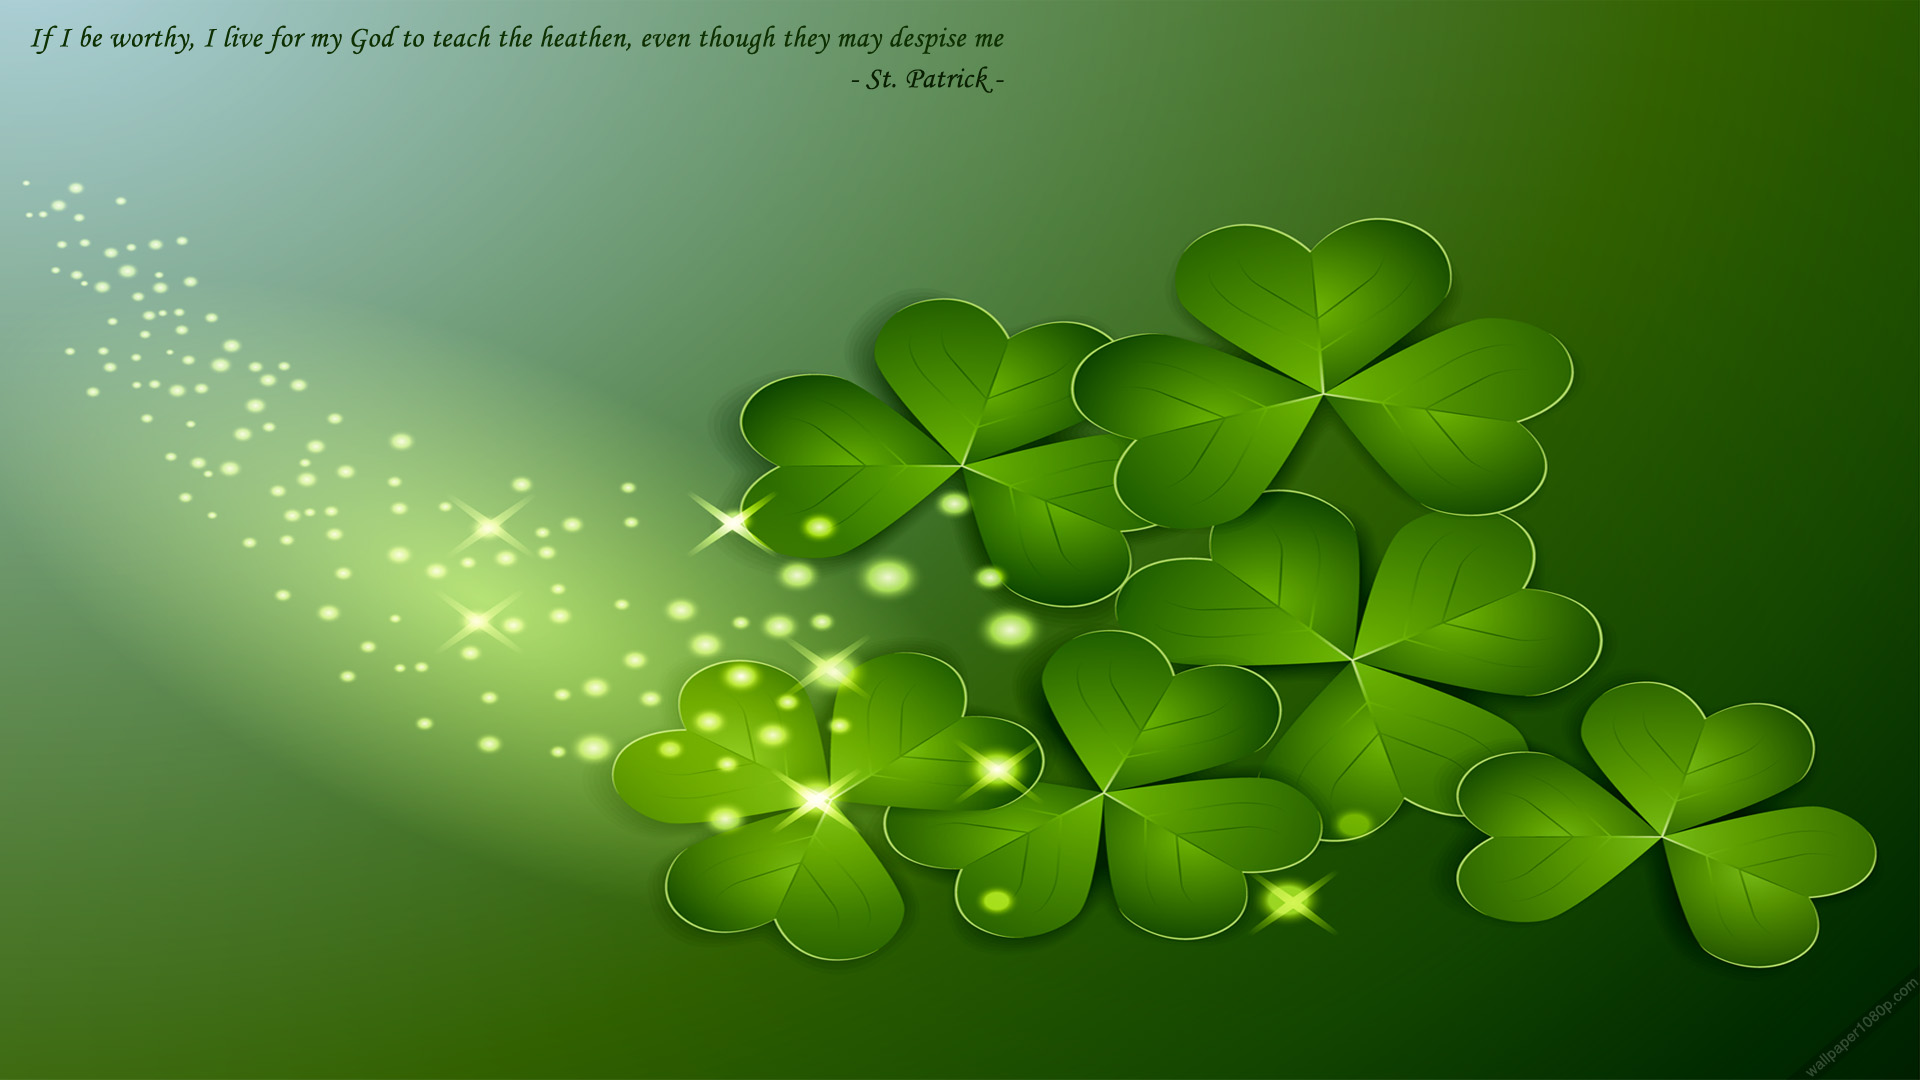 St patrick 39 s day screensavers wallpapers wallpapersafari - Saint patricks day wallpaper free ...